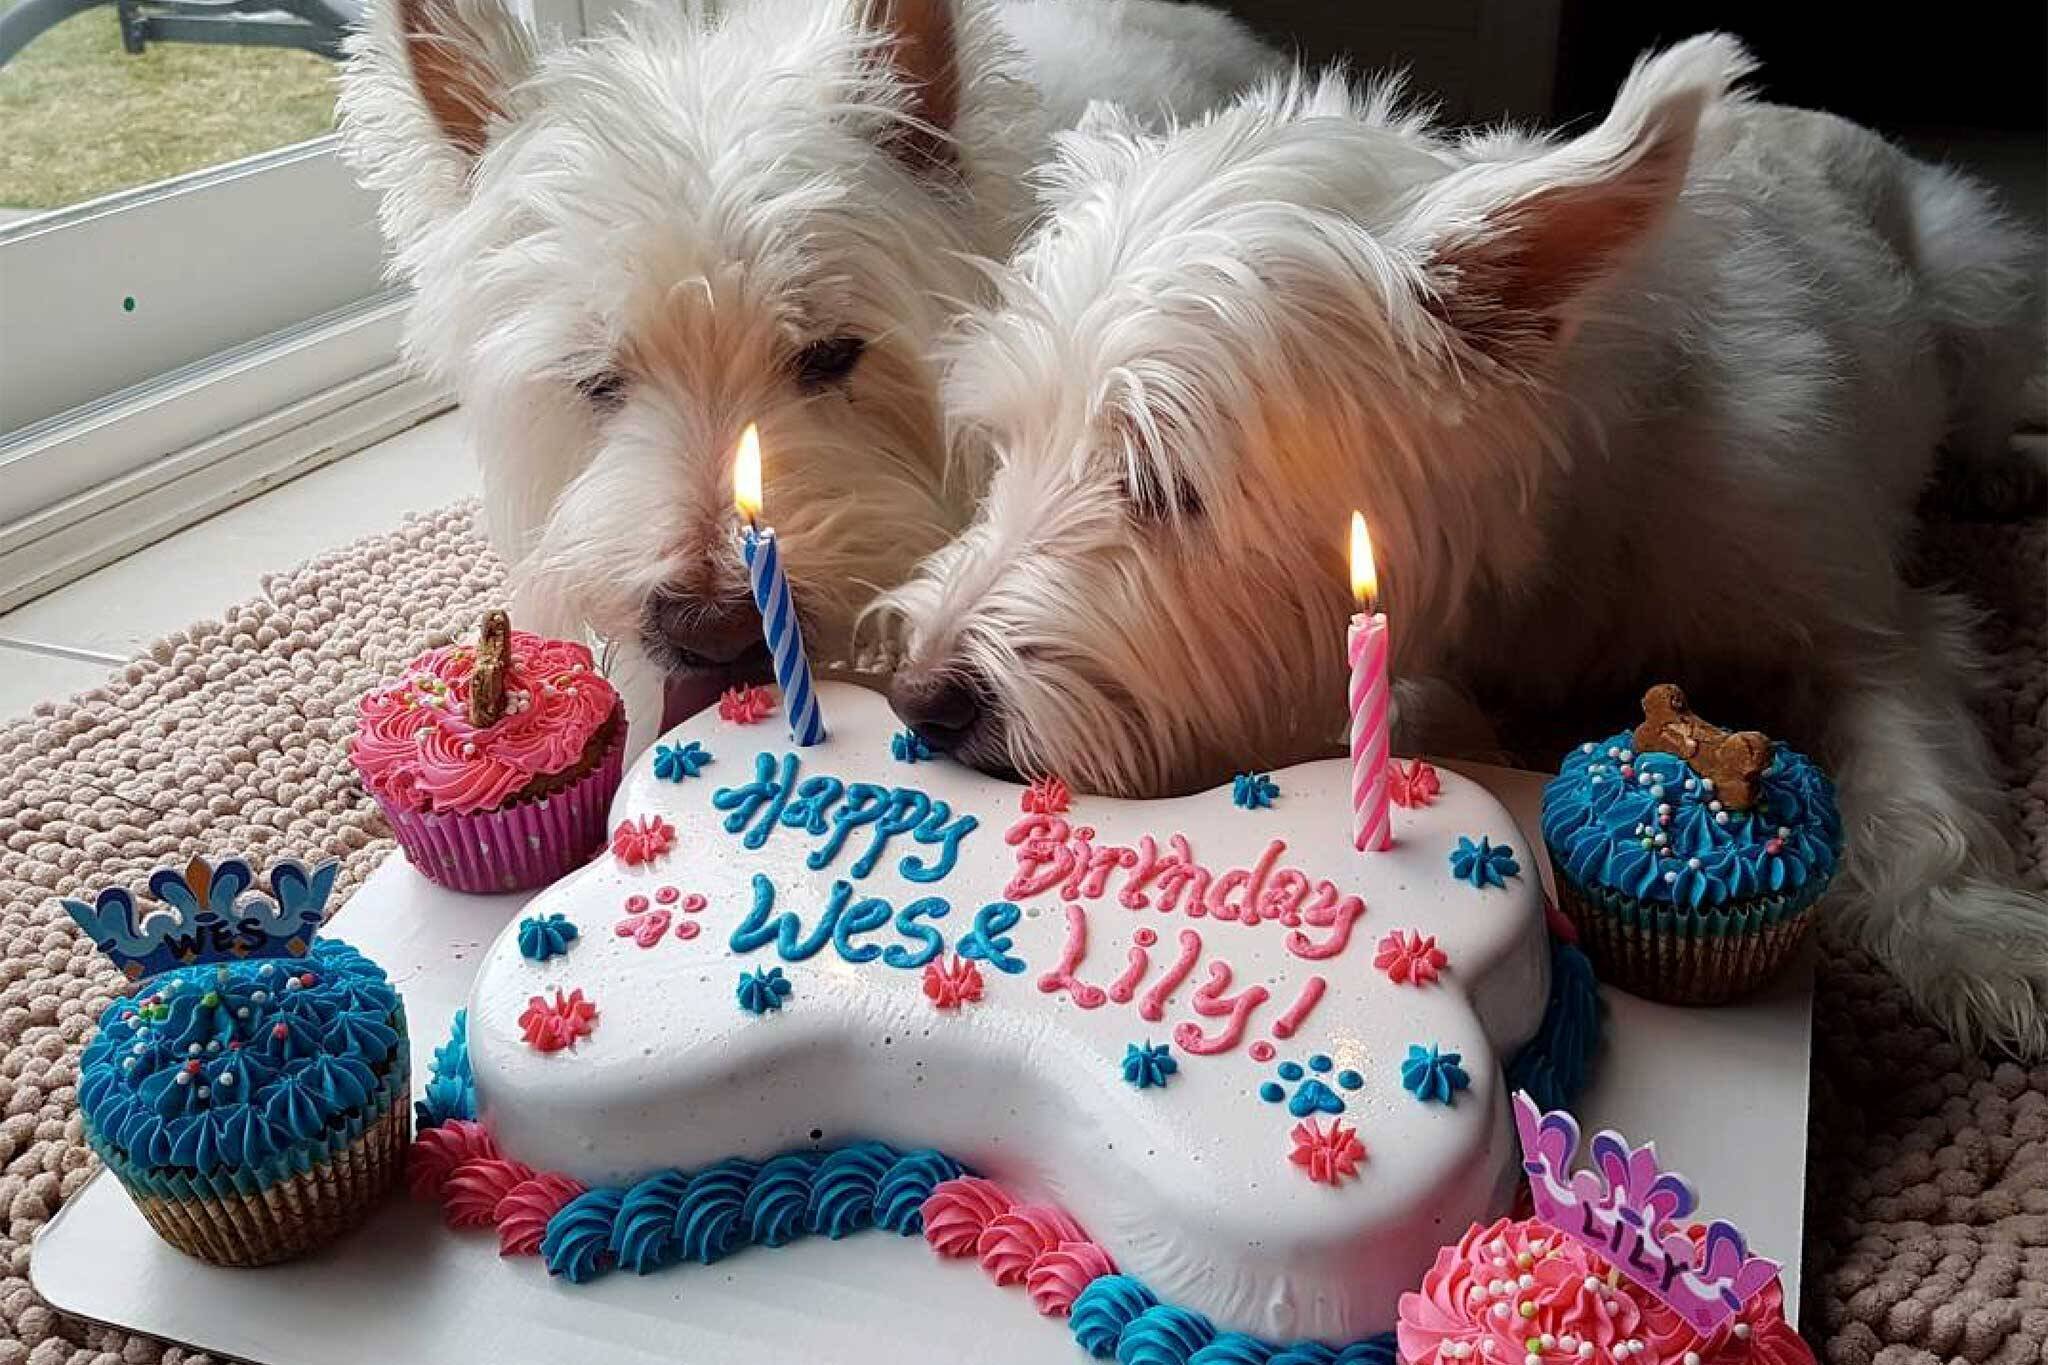 Toronto Bakery Will Make Your Dog A Birthday Cake